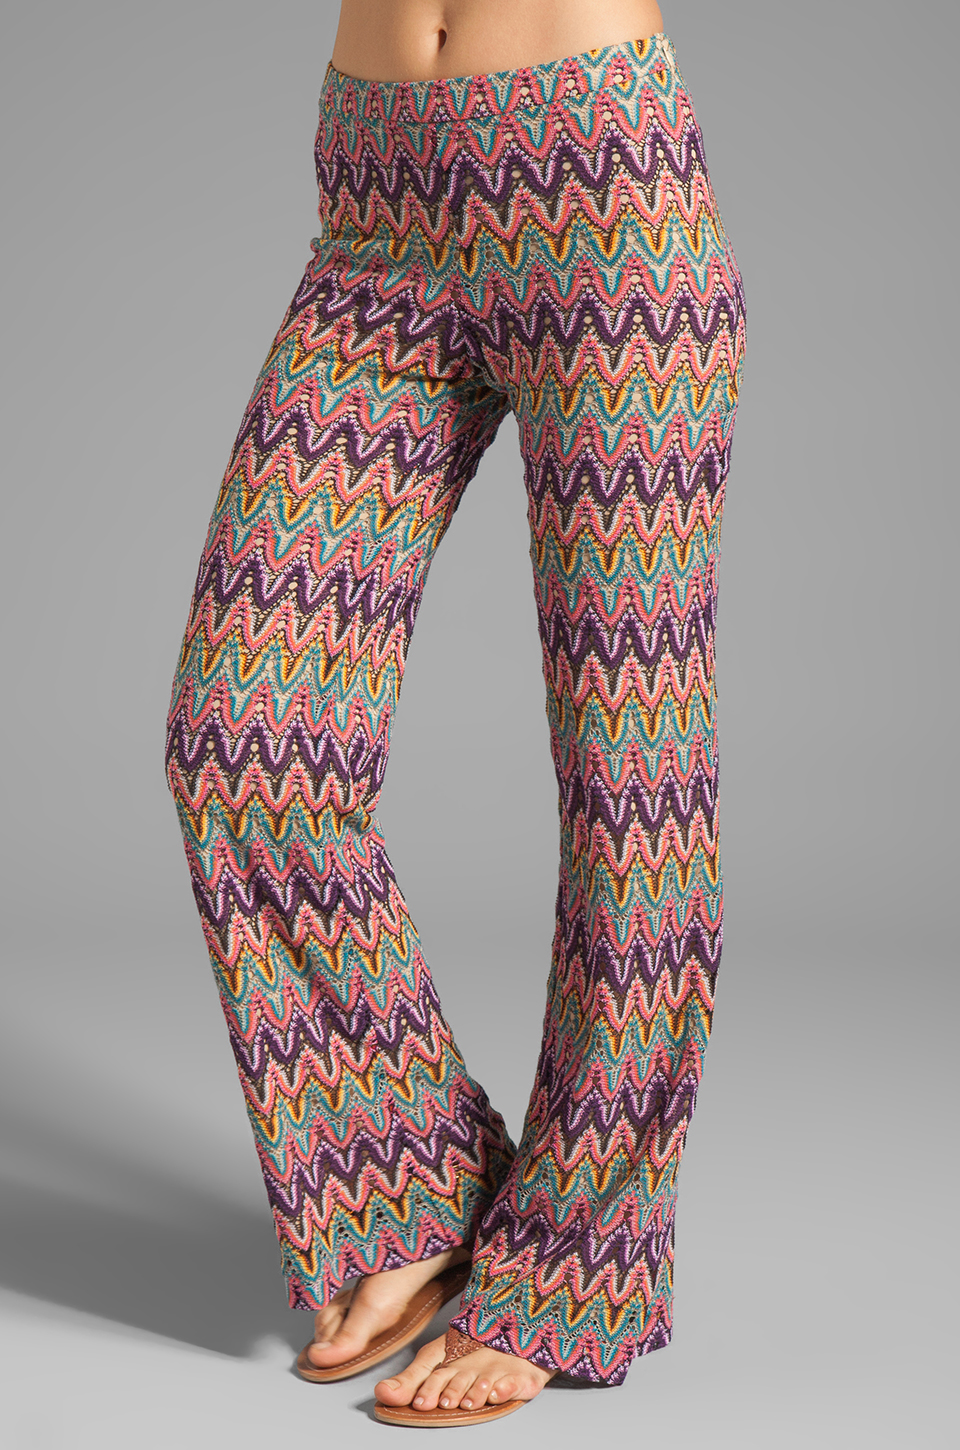 Crochet Stitches Multicolor : Trina Turk Flame Stitch Crochet Lace Perleen Pant in Multi REVOLVE